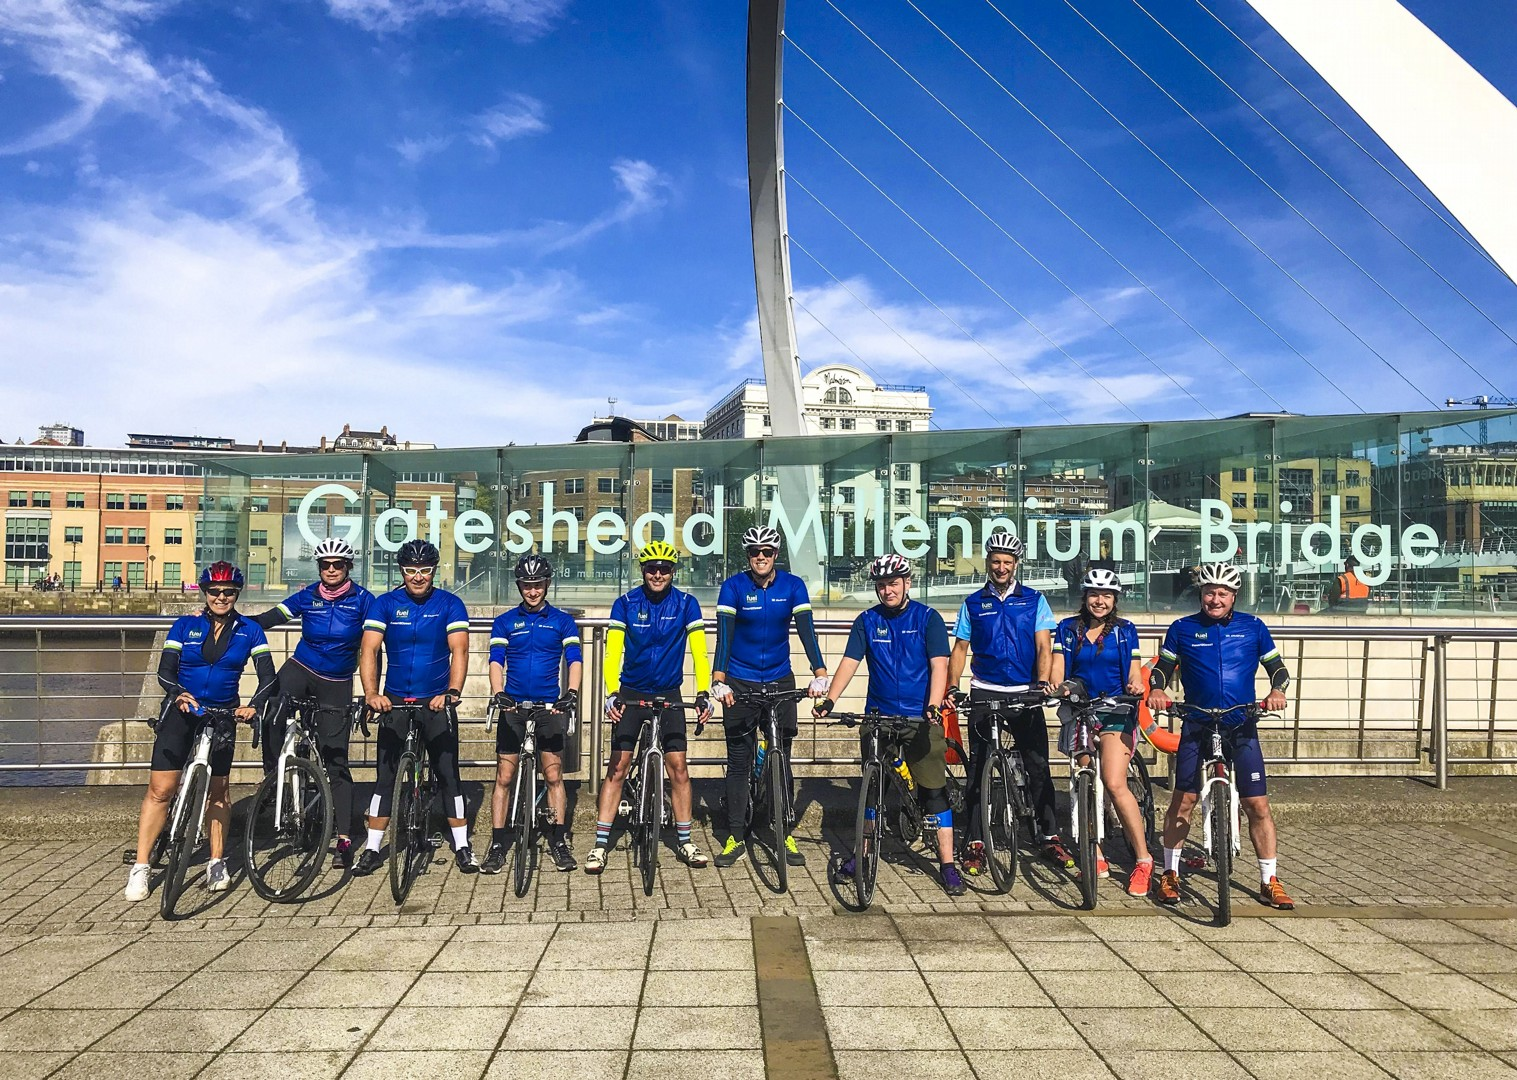 newcastle-cycling-tour-from-whitehaven-group-friends.jpg - UK - C2C - Coast to Coast - Supported Leisure Cycling Holiday - Leisure Cycling